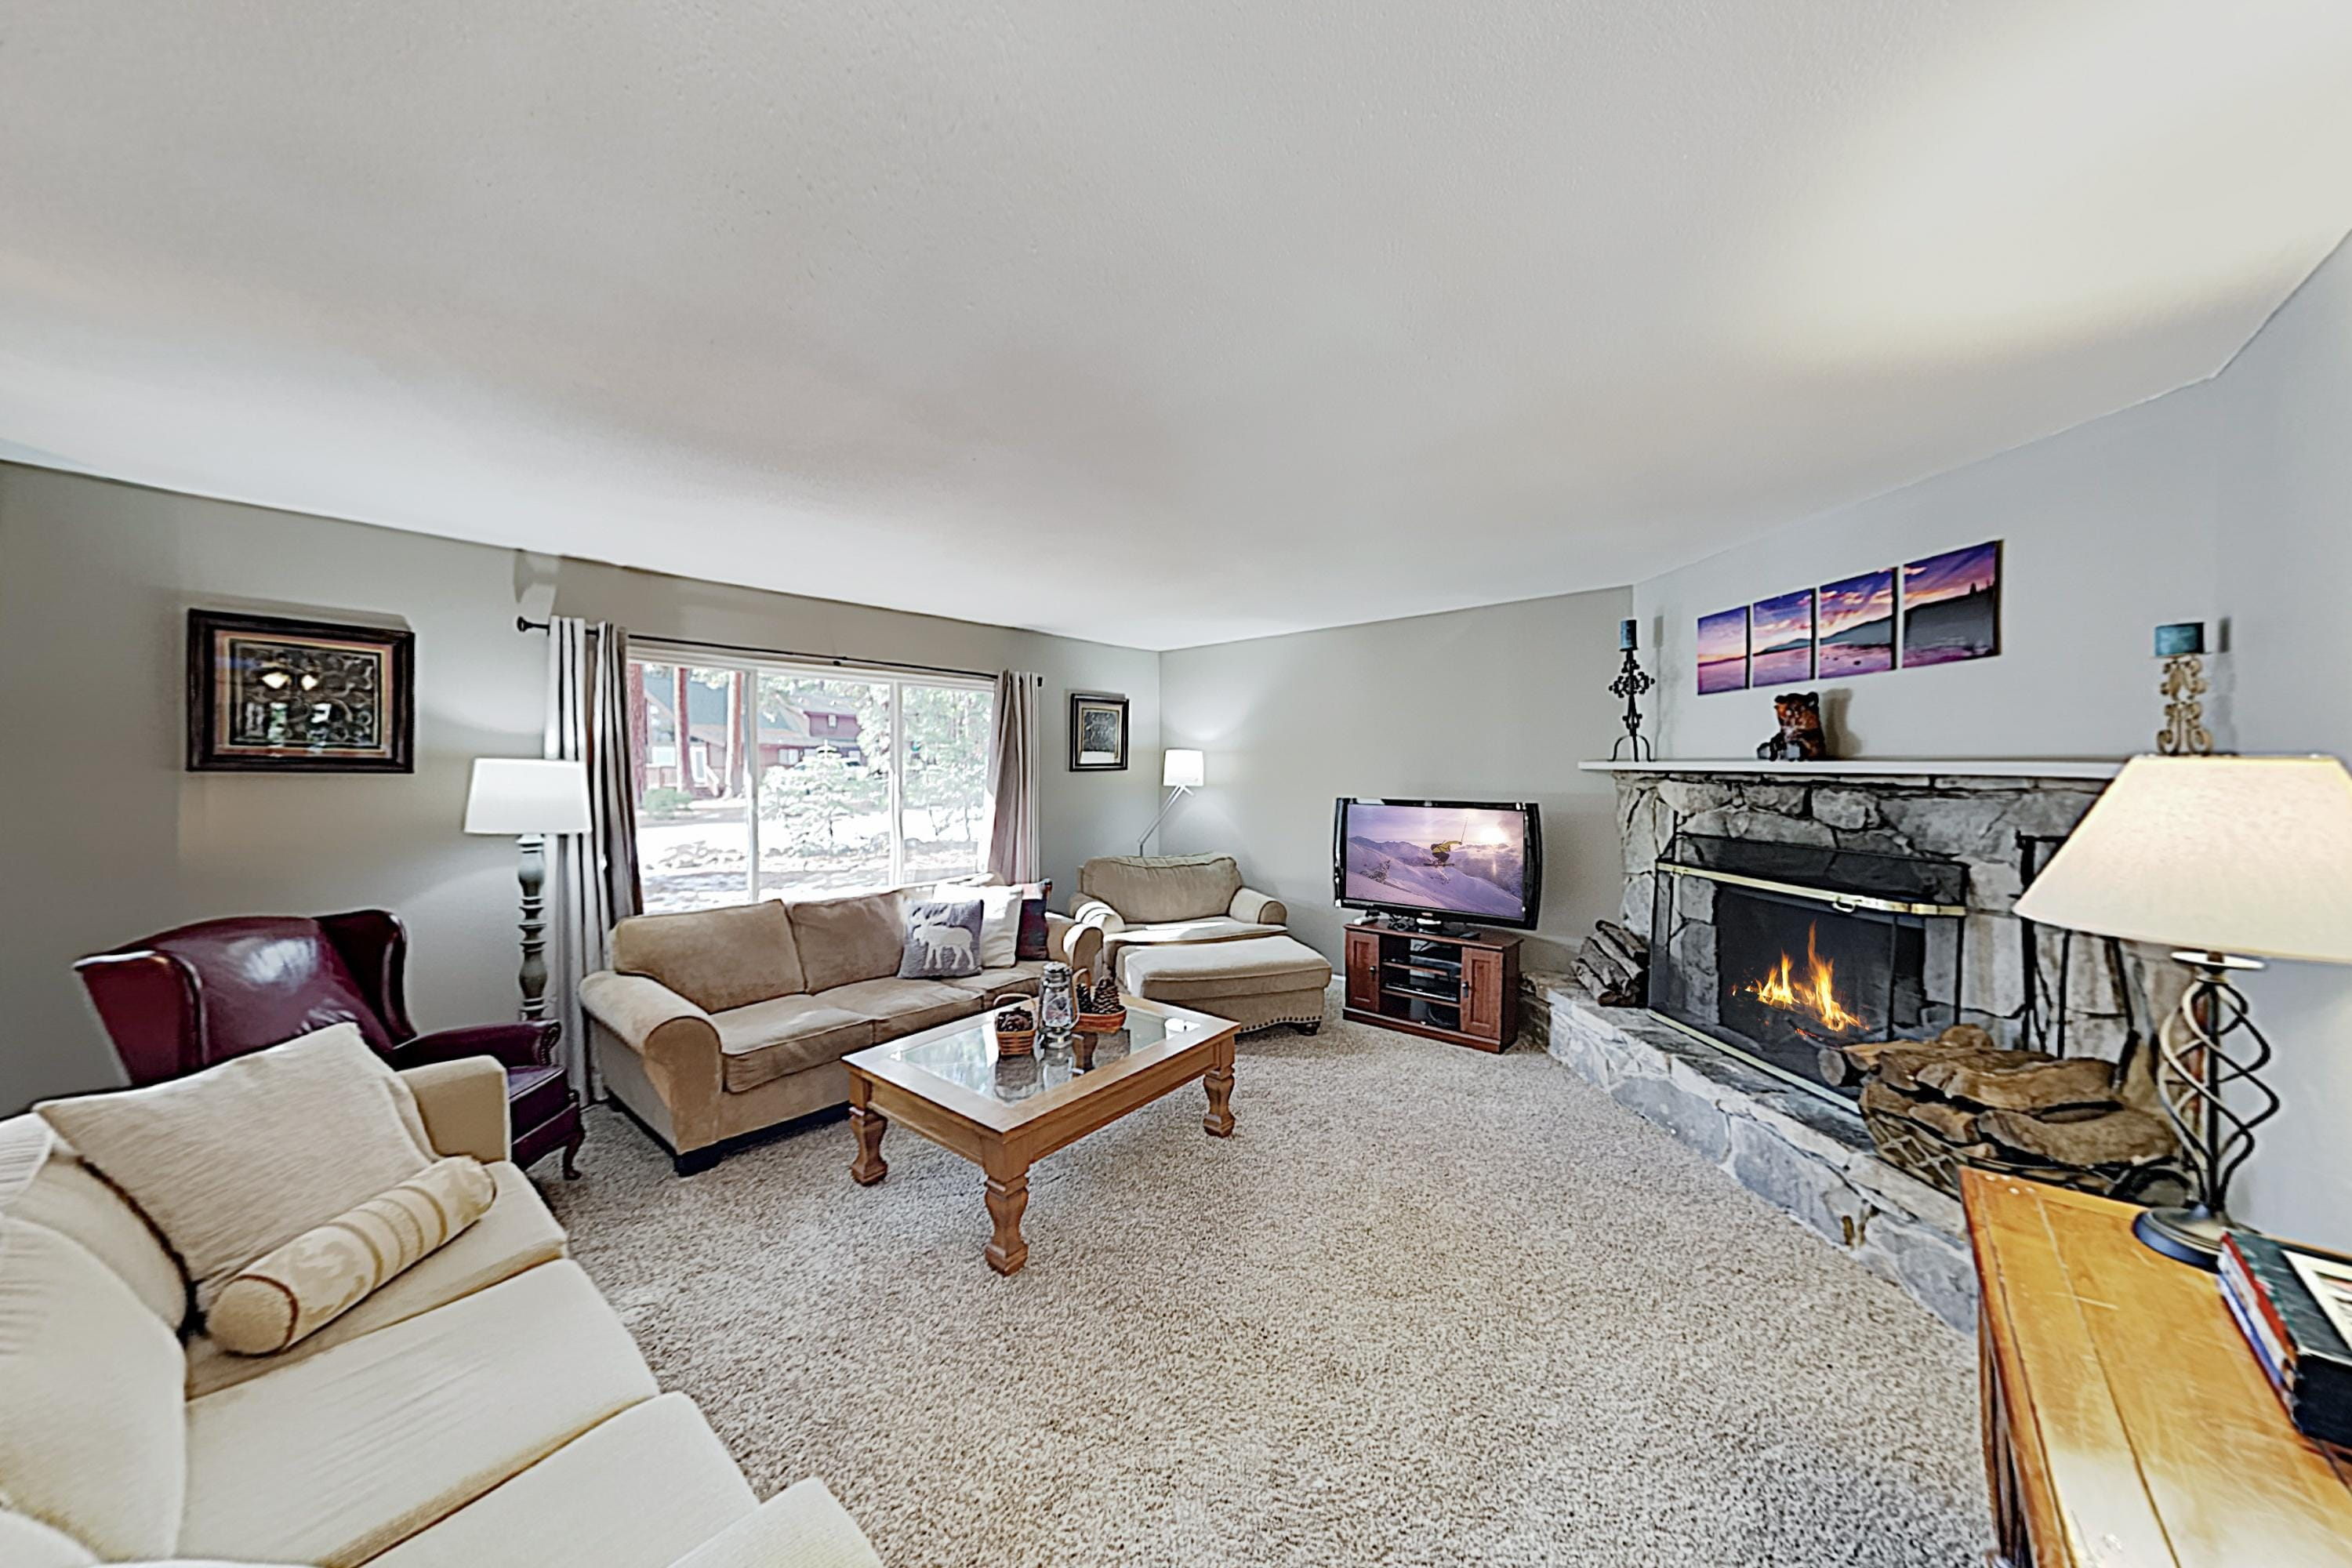 Welcome to Incline Village! This home is professionally managed by TurnKey Vacation Rentals.